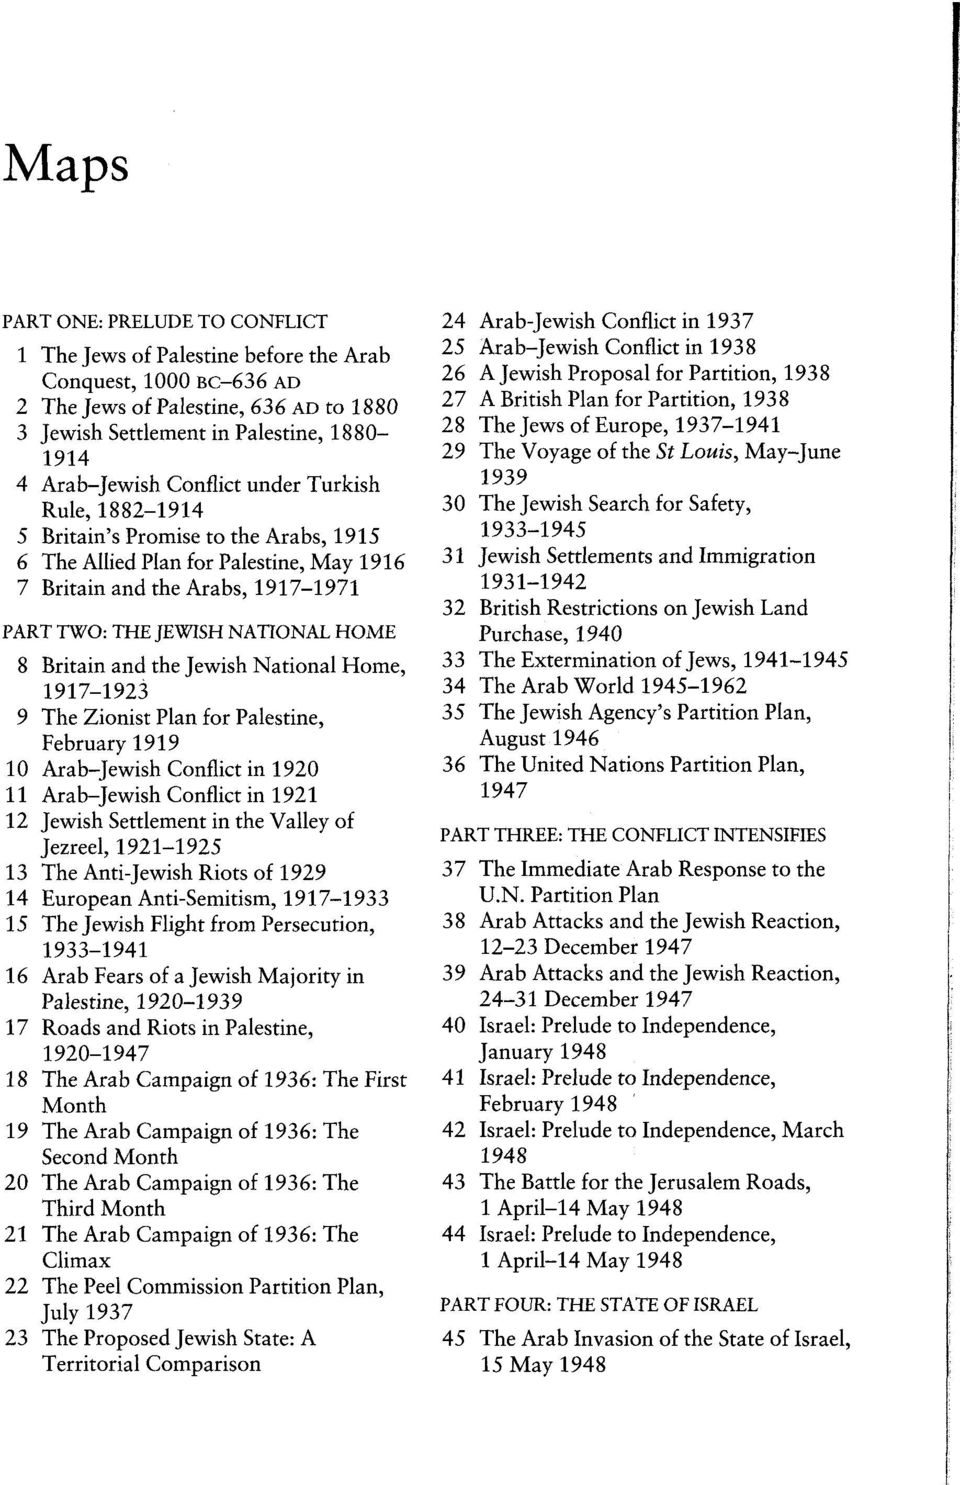 and the Jewish National Home, 1917-1923 9 The Zionist Plan for Palestine, February 1919 10 Arab-Jewish Conflict in 1920 11 Arab-Jewish Conflict in 1921 12 Jewish Settlement in the Valley of Jezreel,